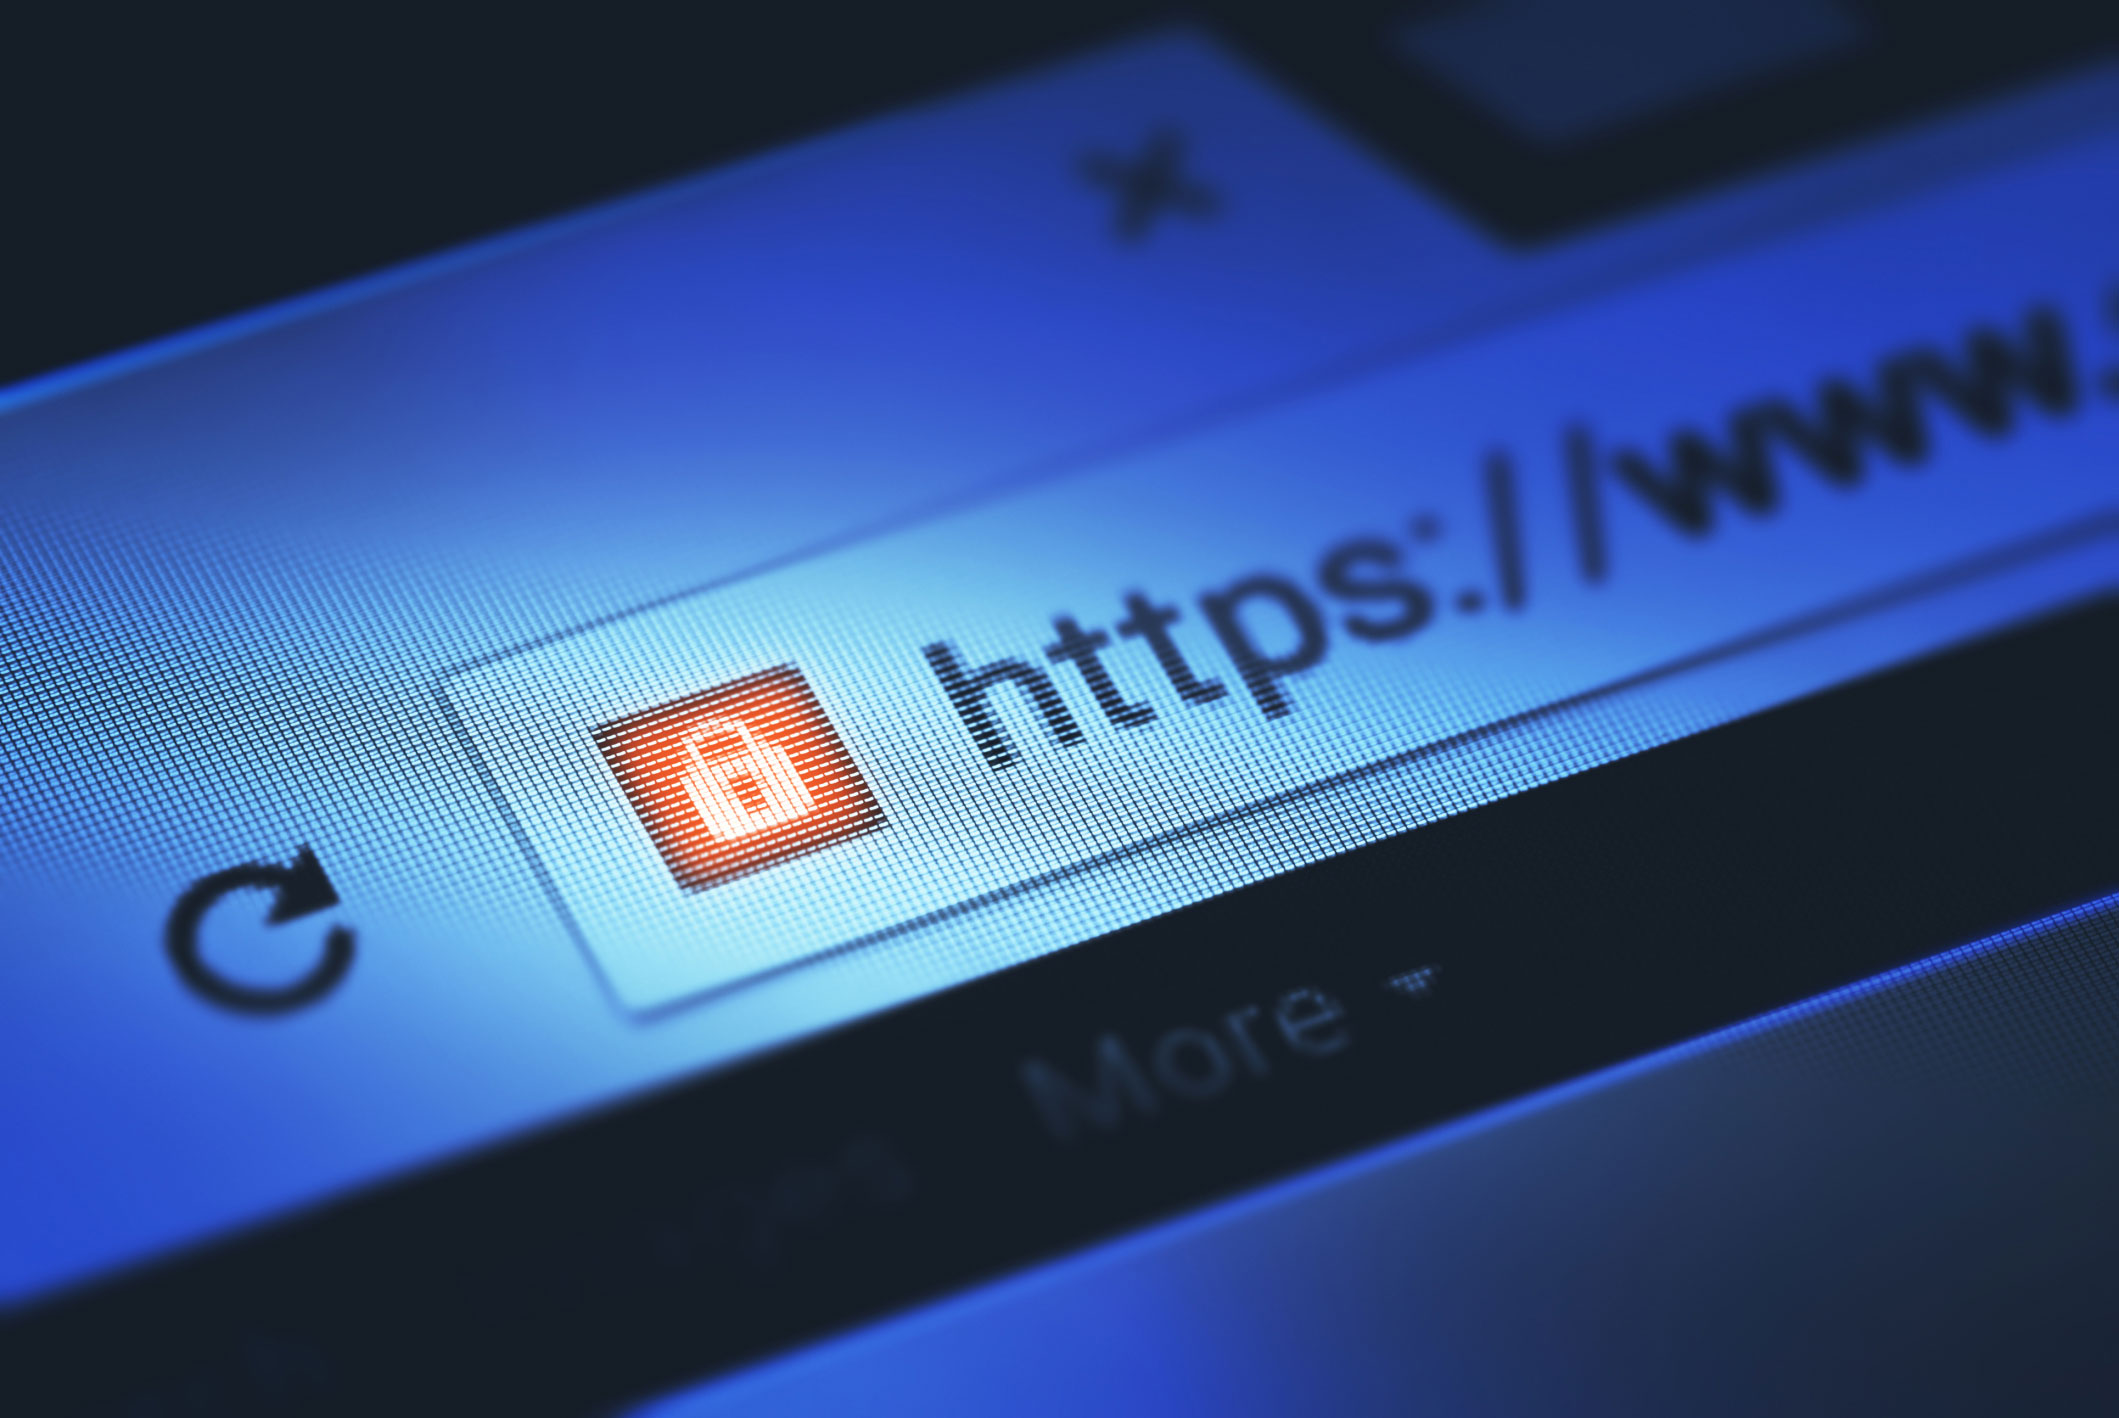 Website ssl upgrade your website with ssl certificate upgrade your website with ssl certificate 1betcityfo Image collections